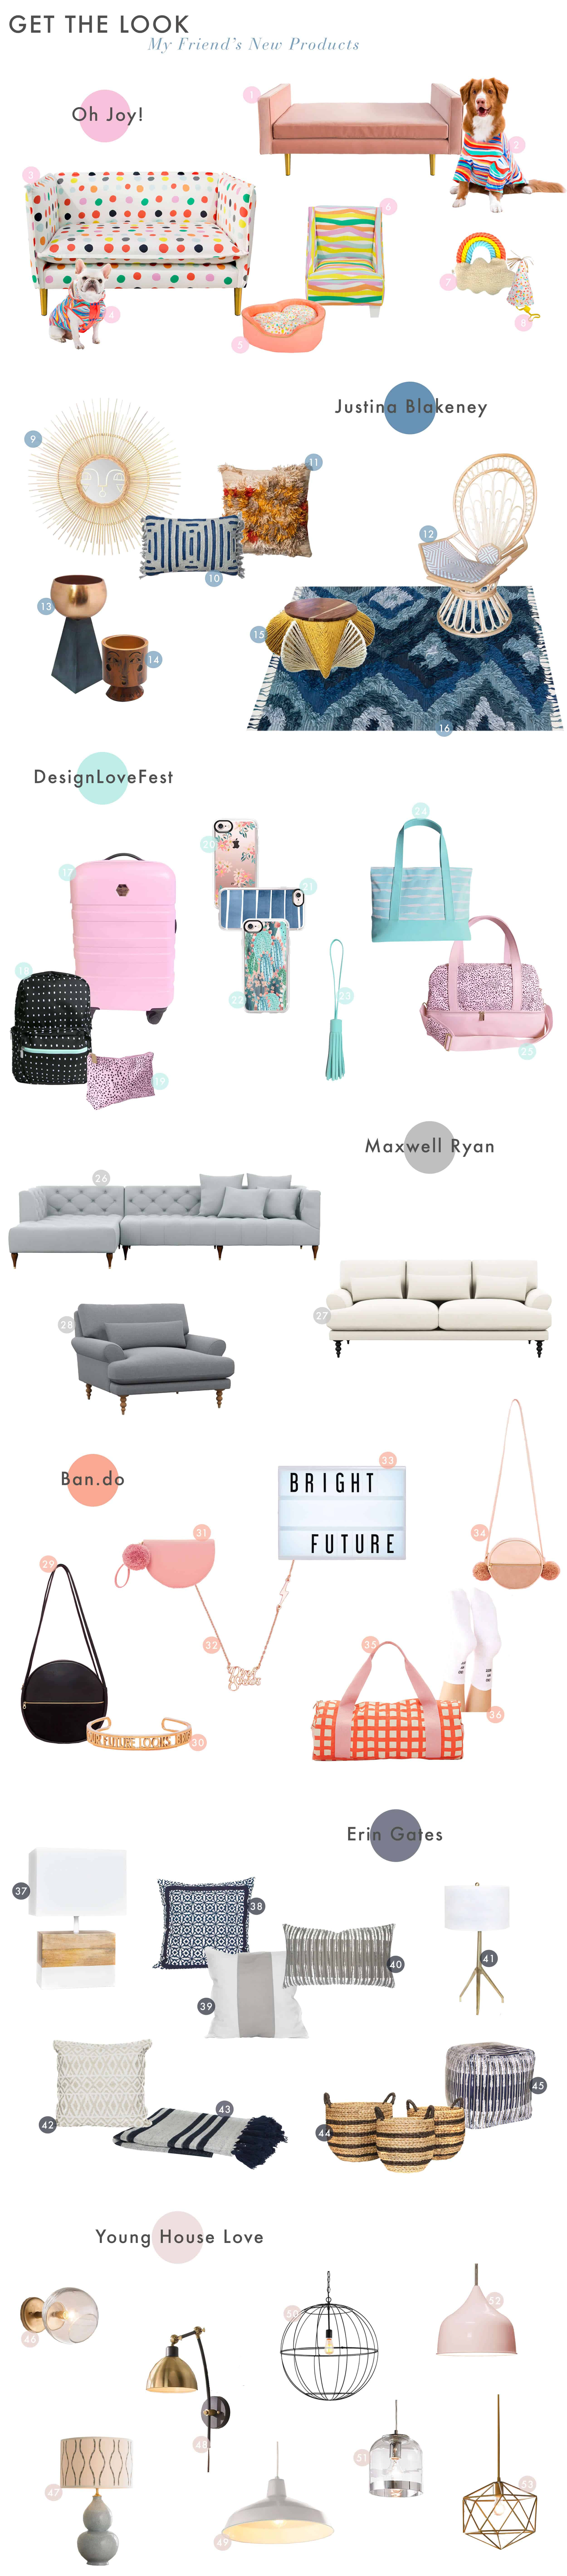 Emily Henderson_My Friend's Products_Oh Joy_Apartment Therapy_The Jungalow_Designlovefest_Bando_Get the Look